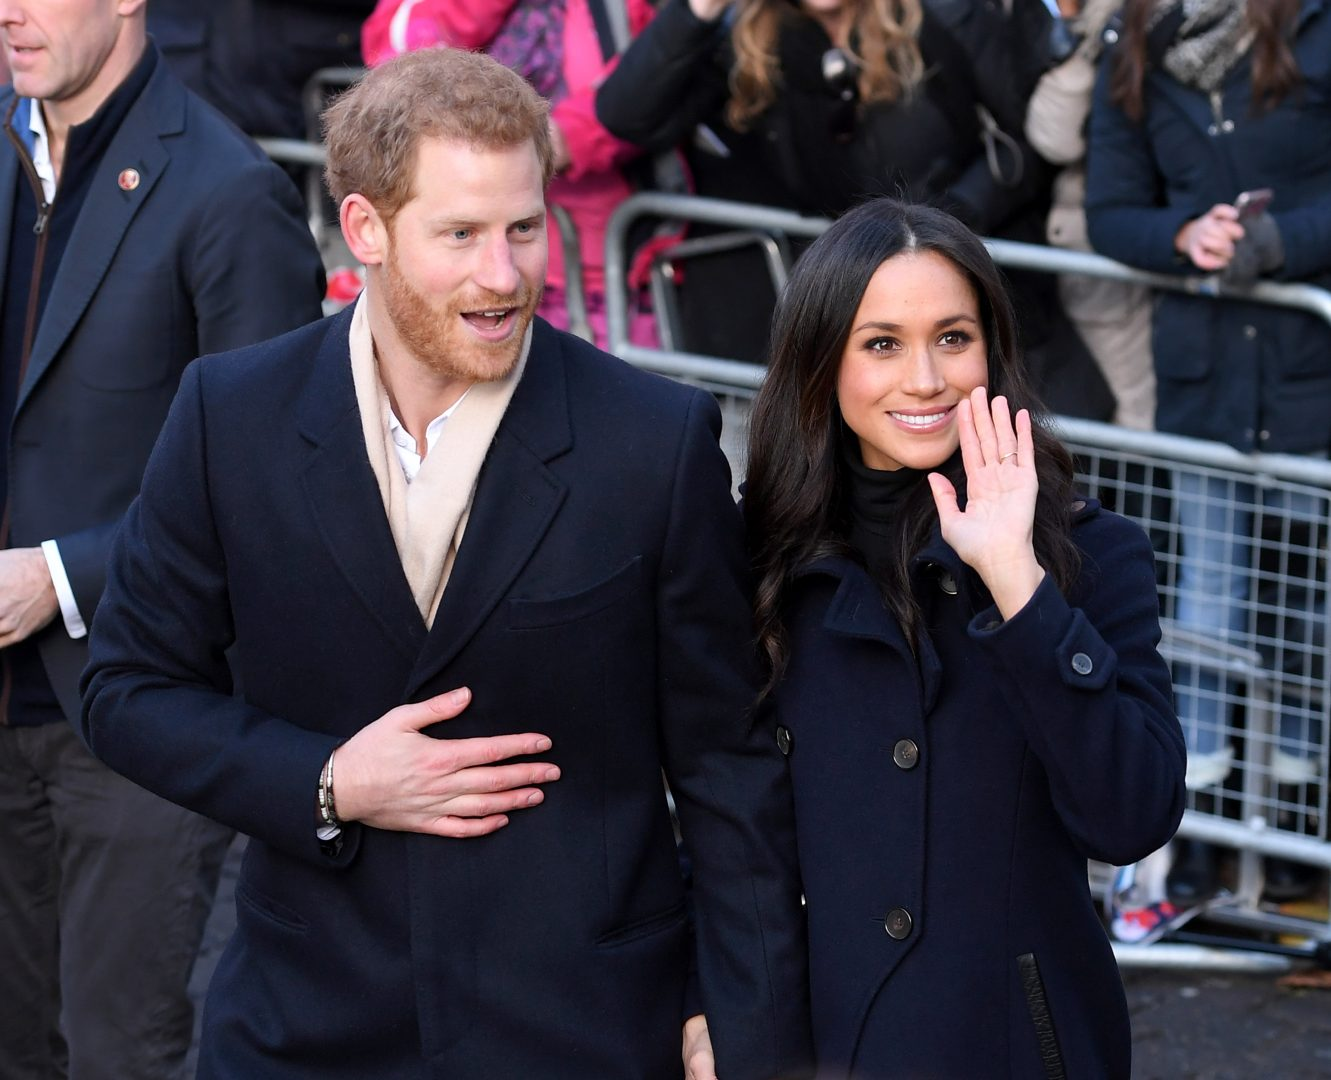 Prince Harry Wedding Date.Read Prince Harry And Meghan Markle S Wedding Date Revealed